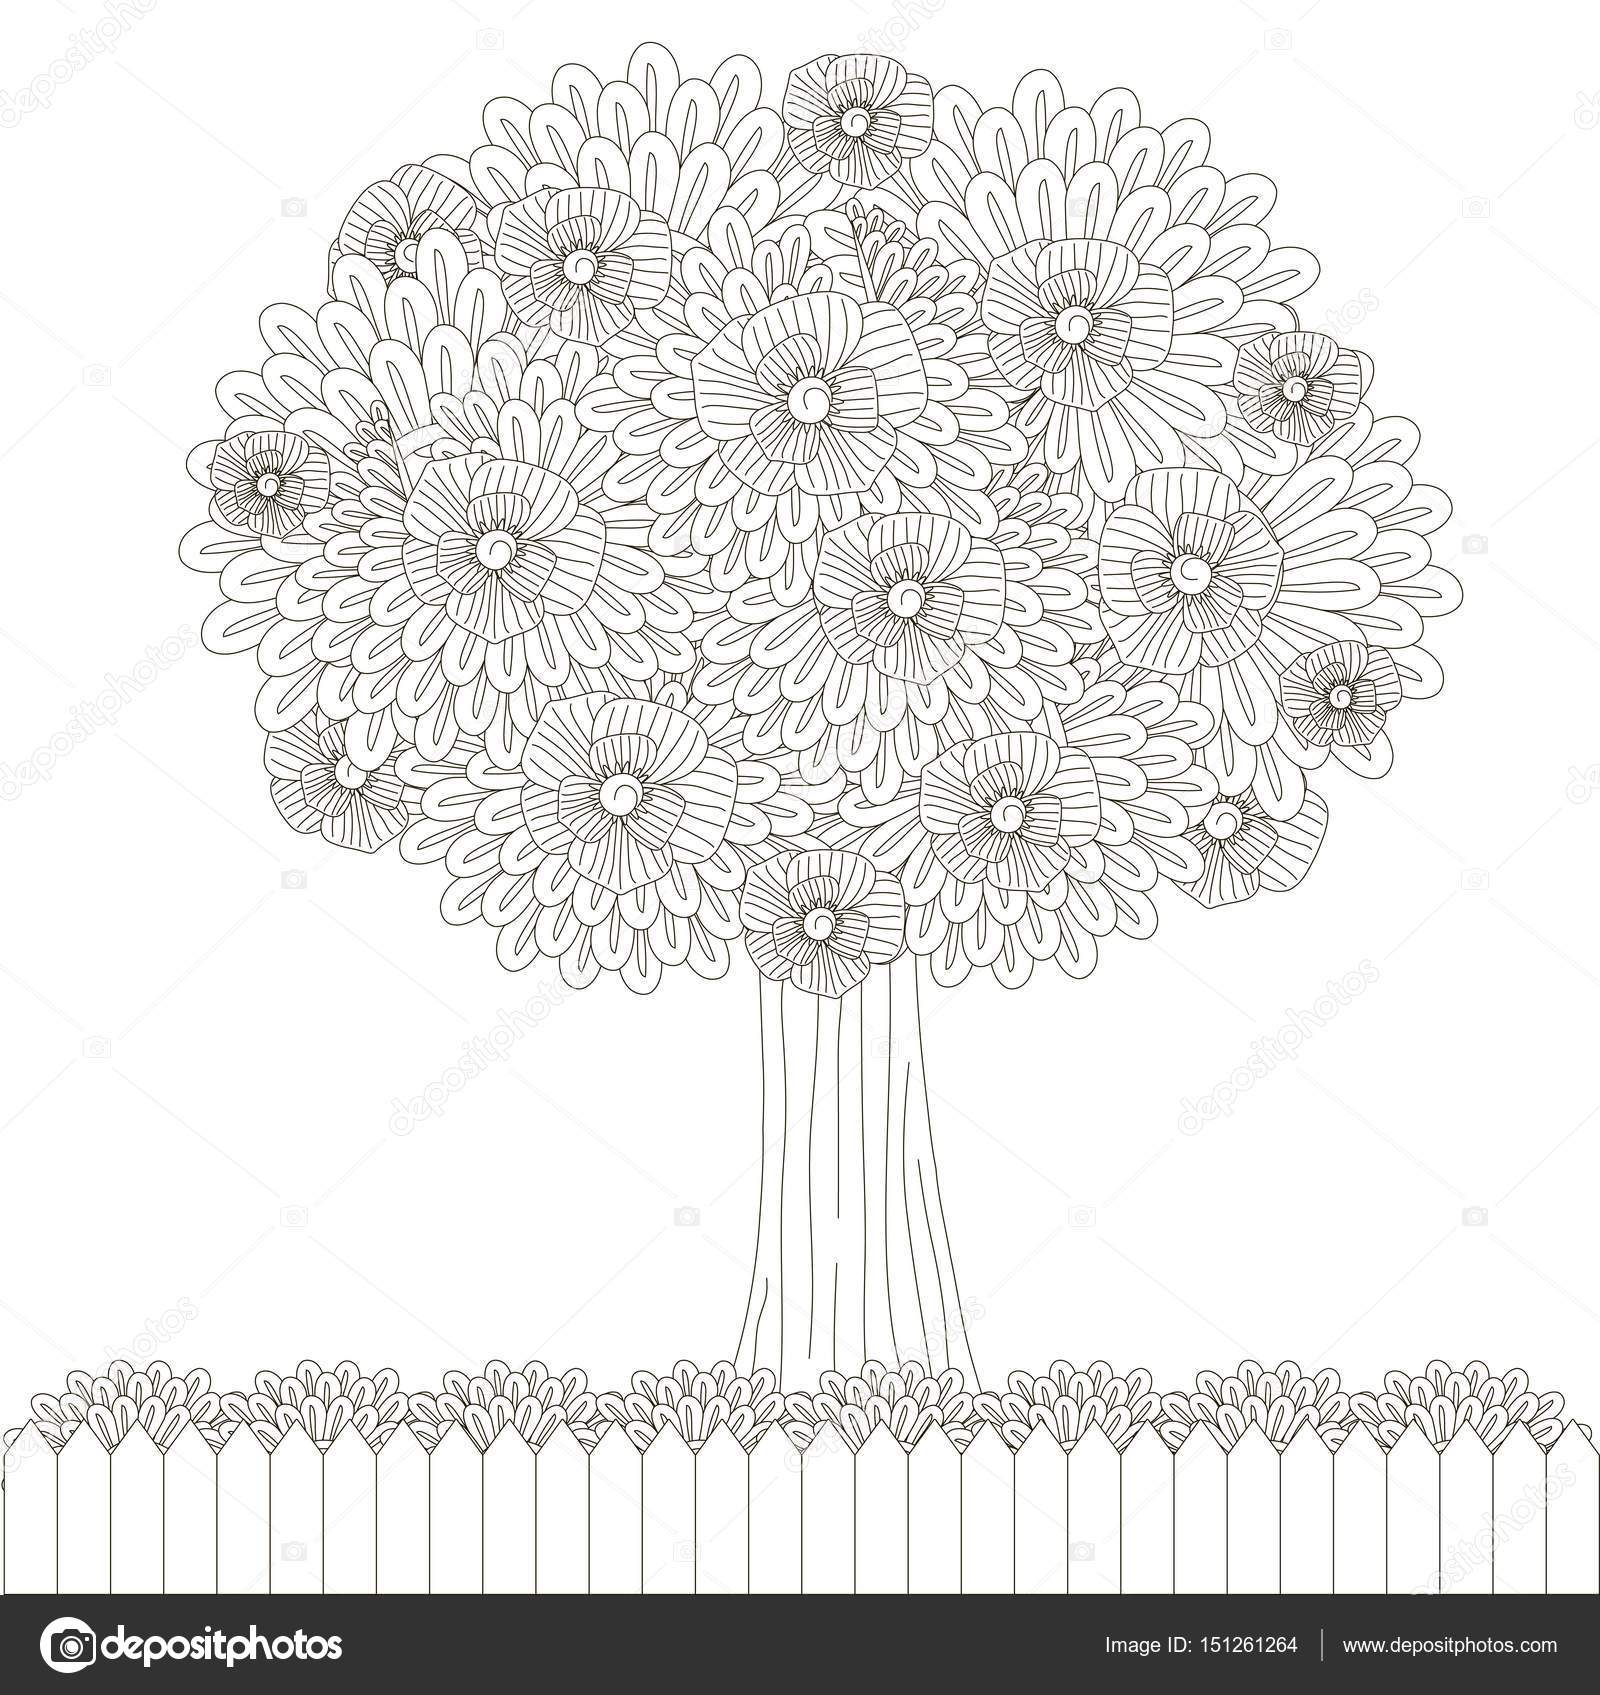 Coloriage Arbre Anti Stress.Arbre Fleuri Barriere Pour Coloriages Illustration Vectorielle